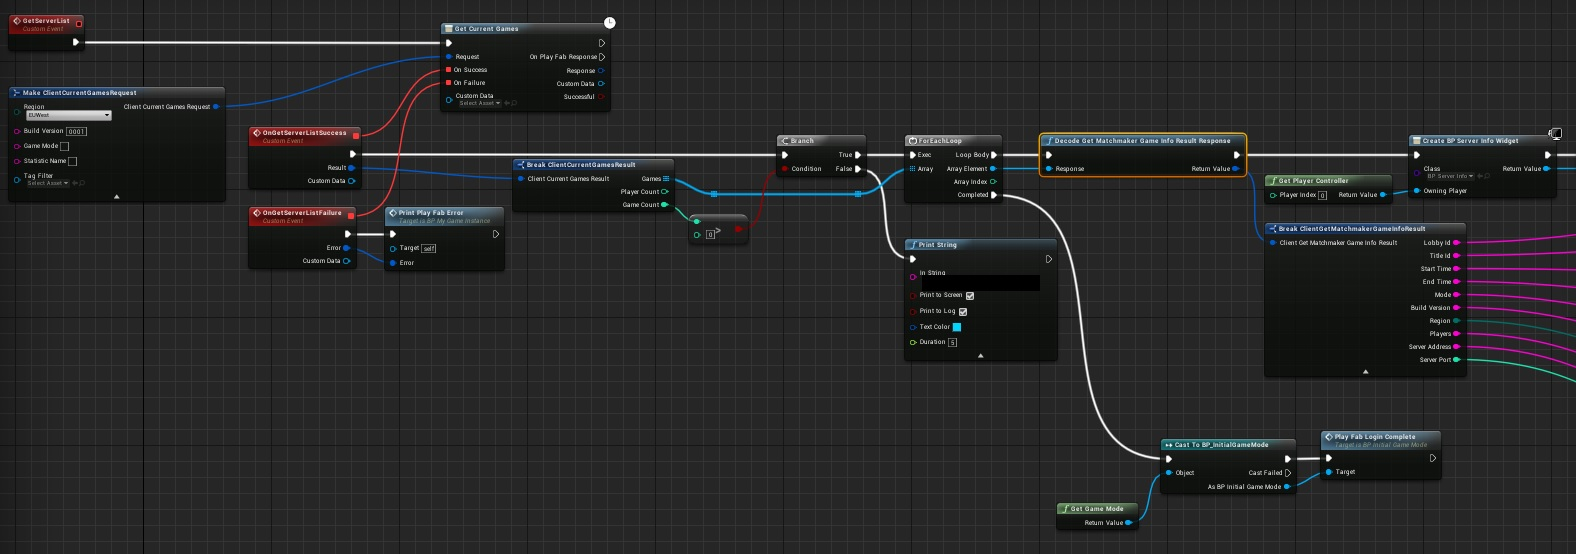 UE4 Blueprint decodeGetMatchmakerGameInfoResult - Playfab